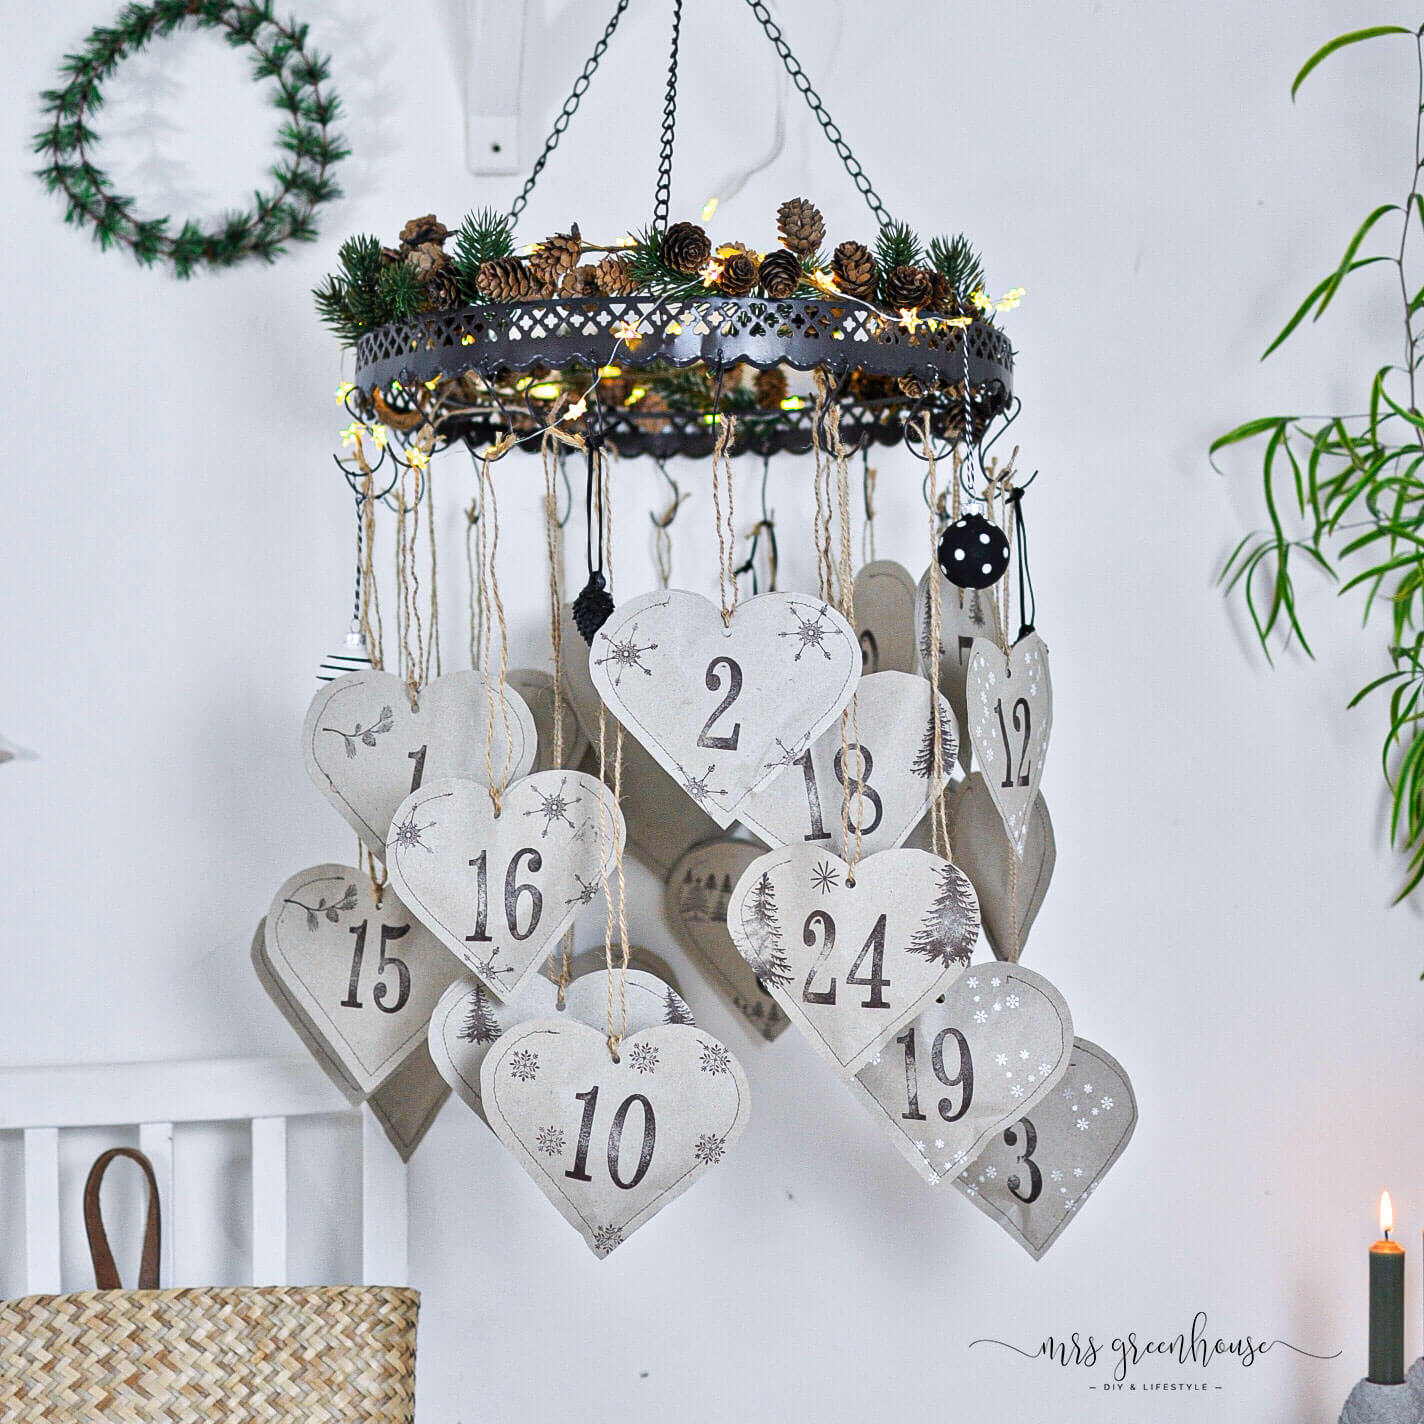 Upcycling Adventskalender aus Papier